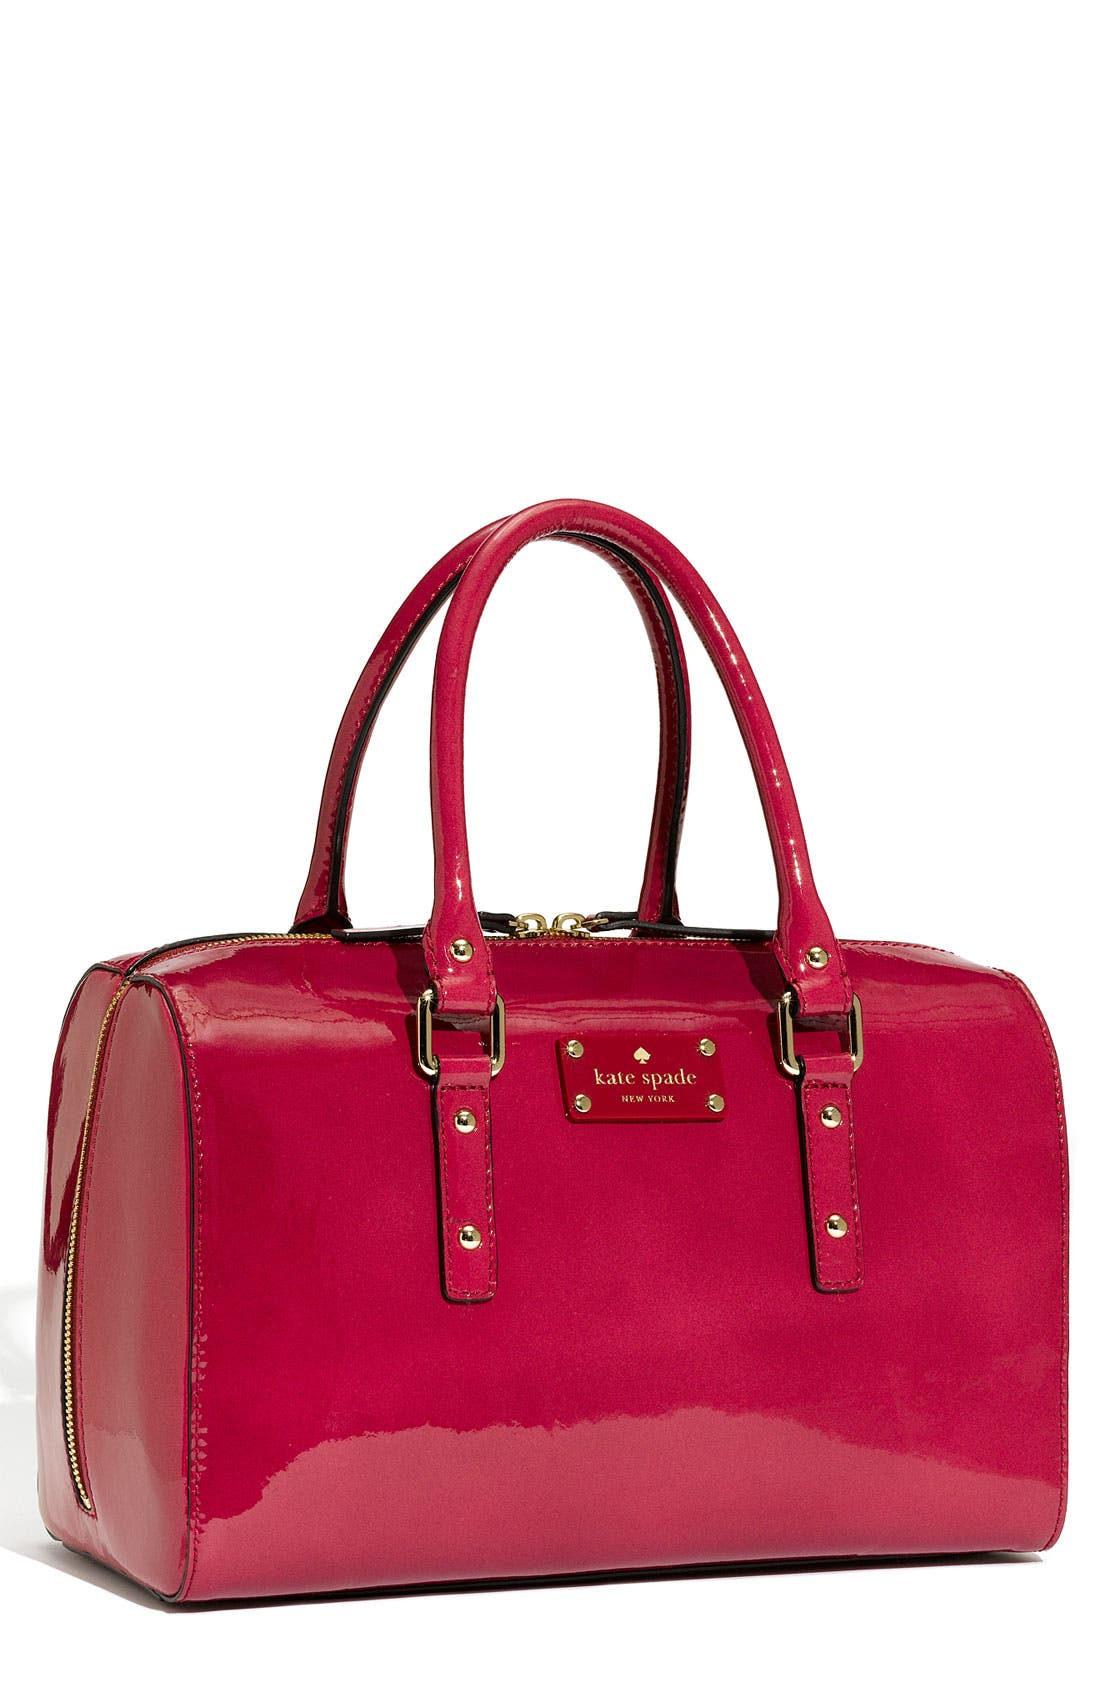 Alternate Image 1 Selected - kate spade new york 'flicker - melinda' satchel